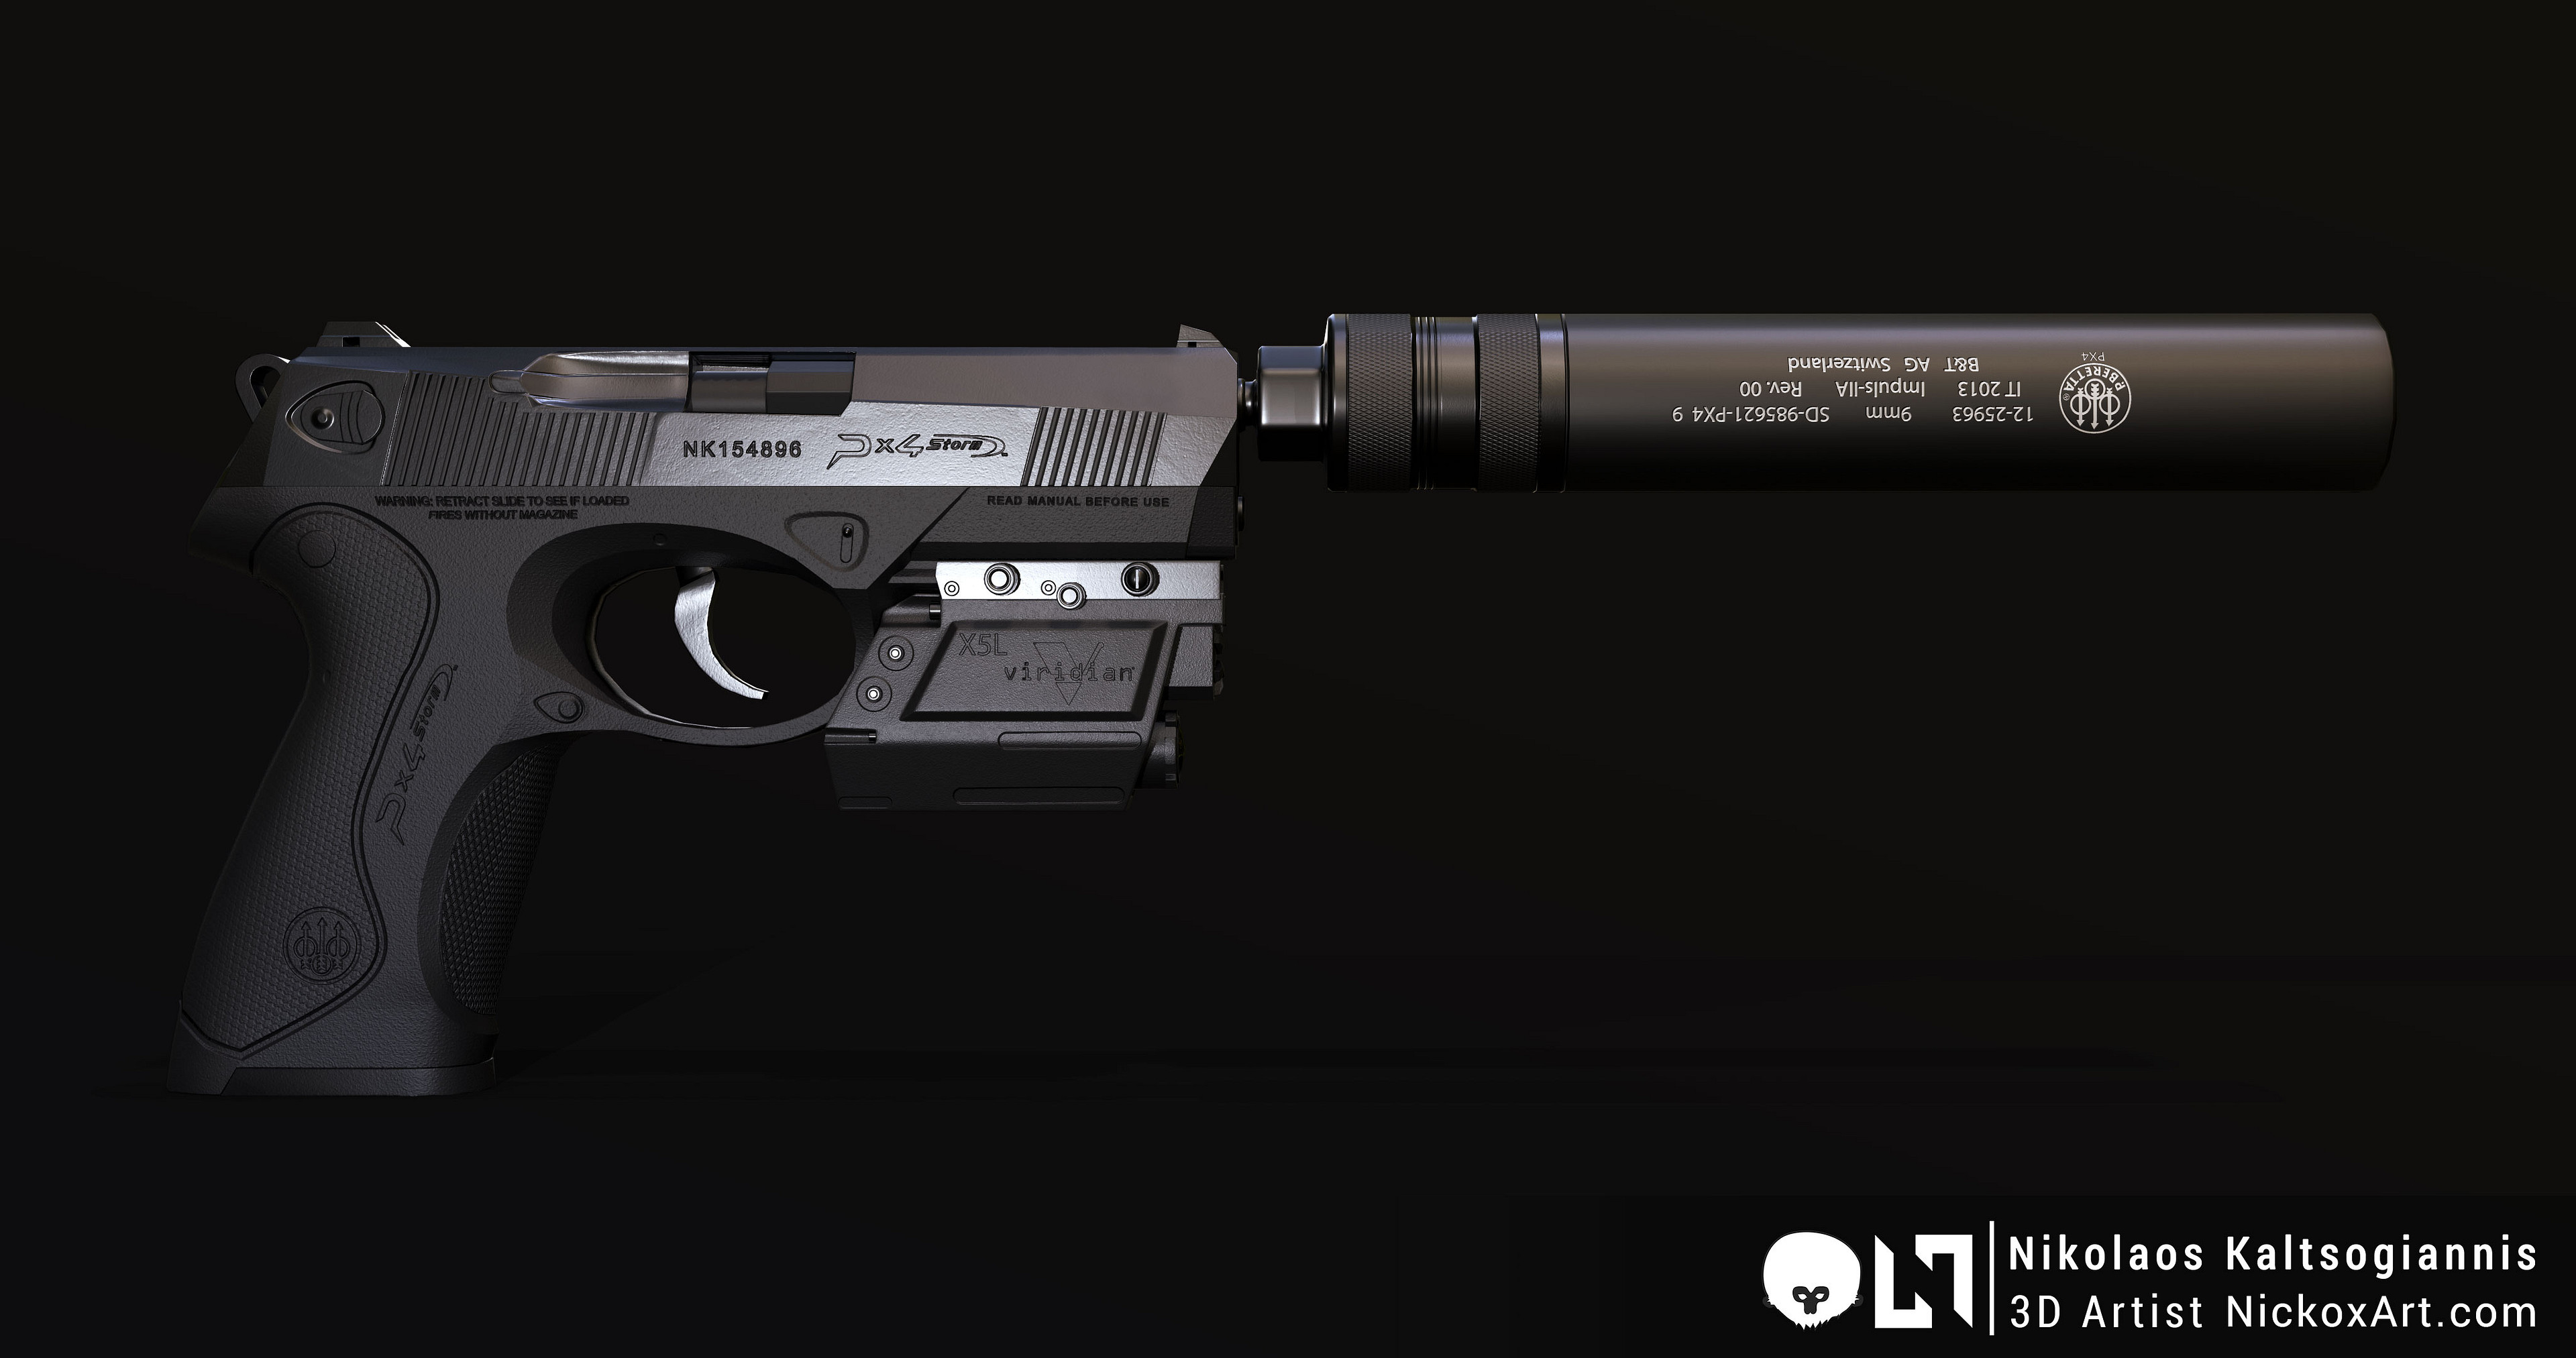 With Silencer and Laser / Flashlight Combo